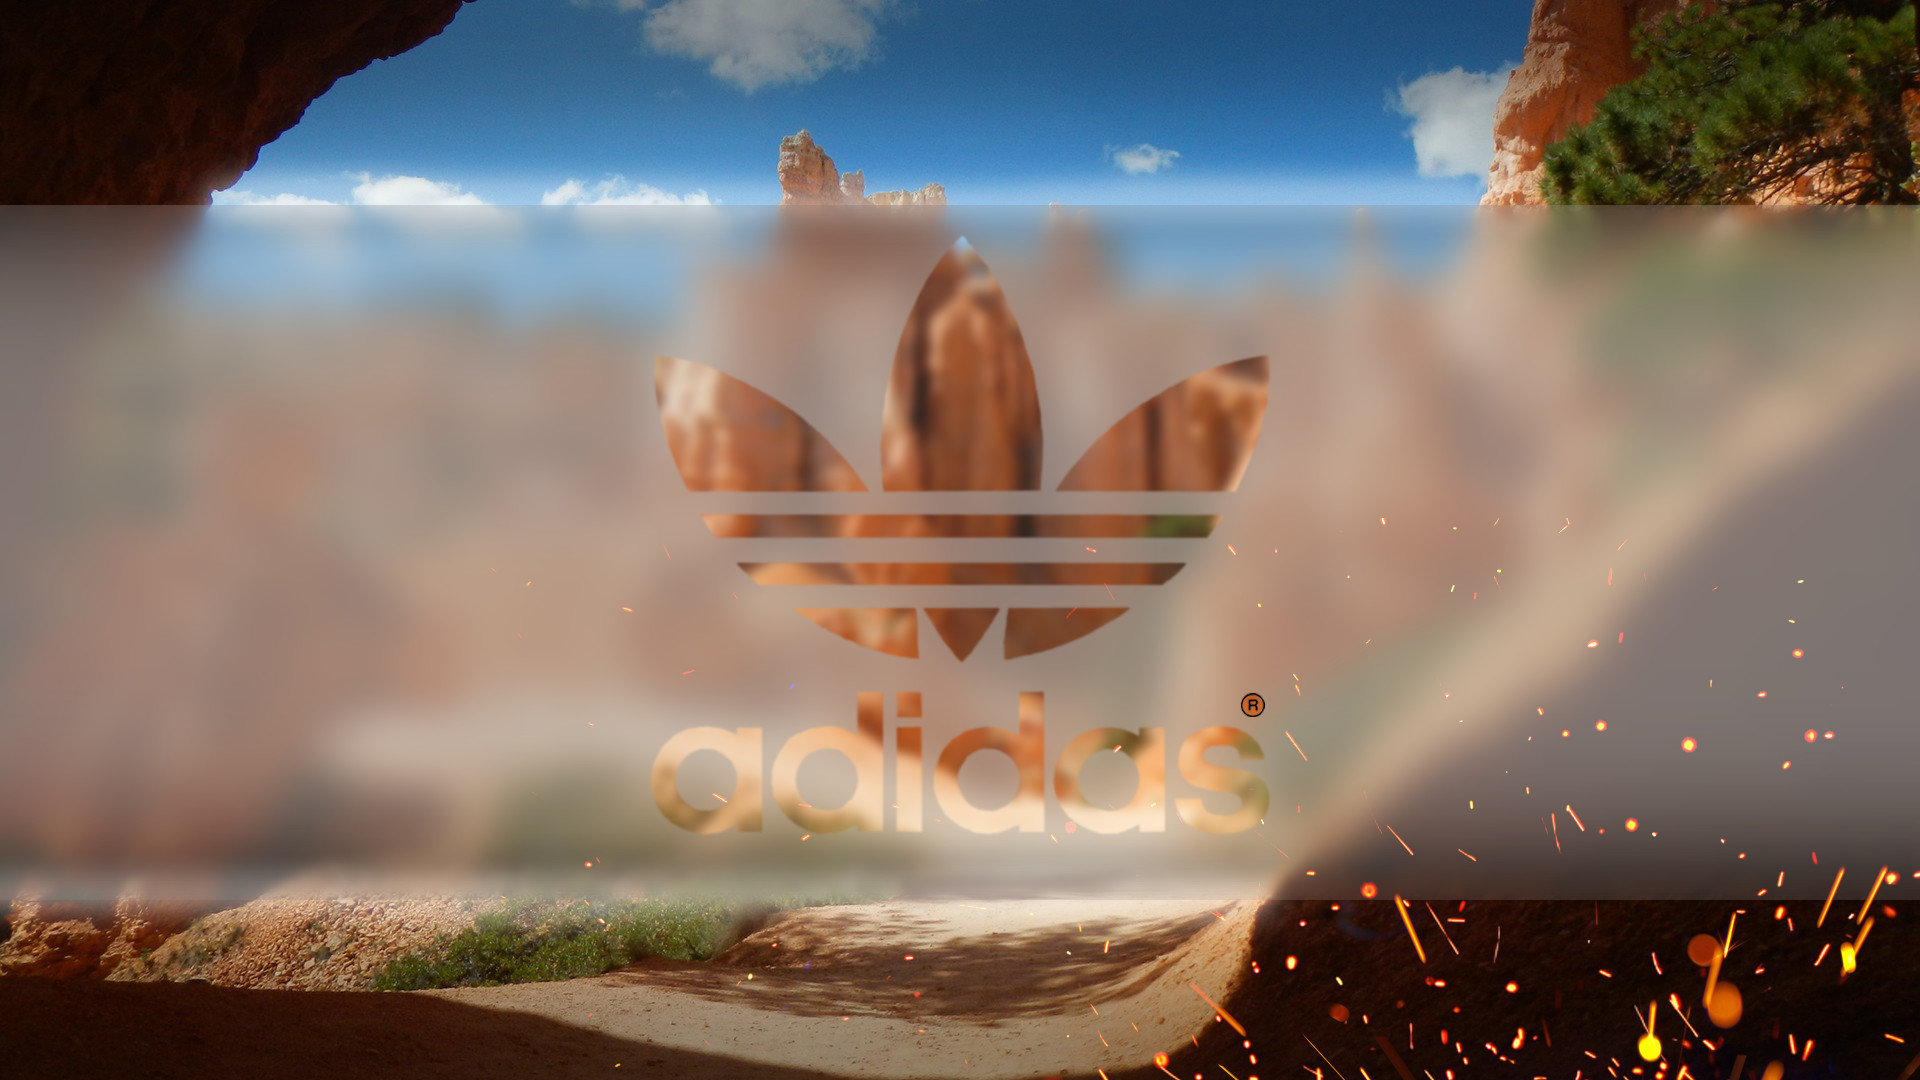 Free download Adidas wallpaper ID:59622 full hd 1920x1080 for desktop